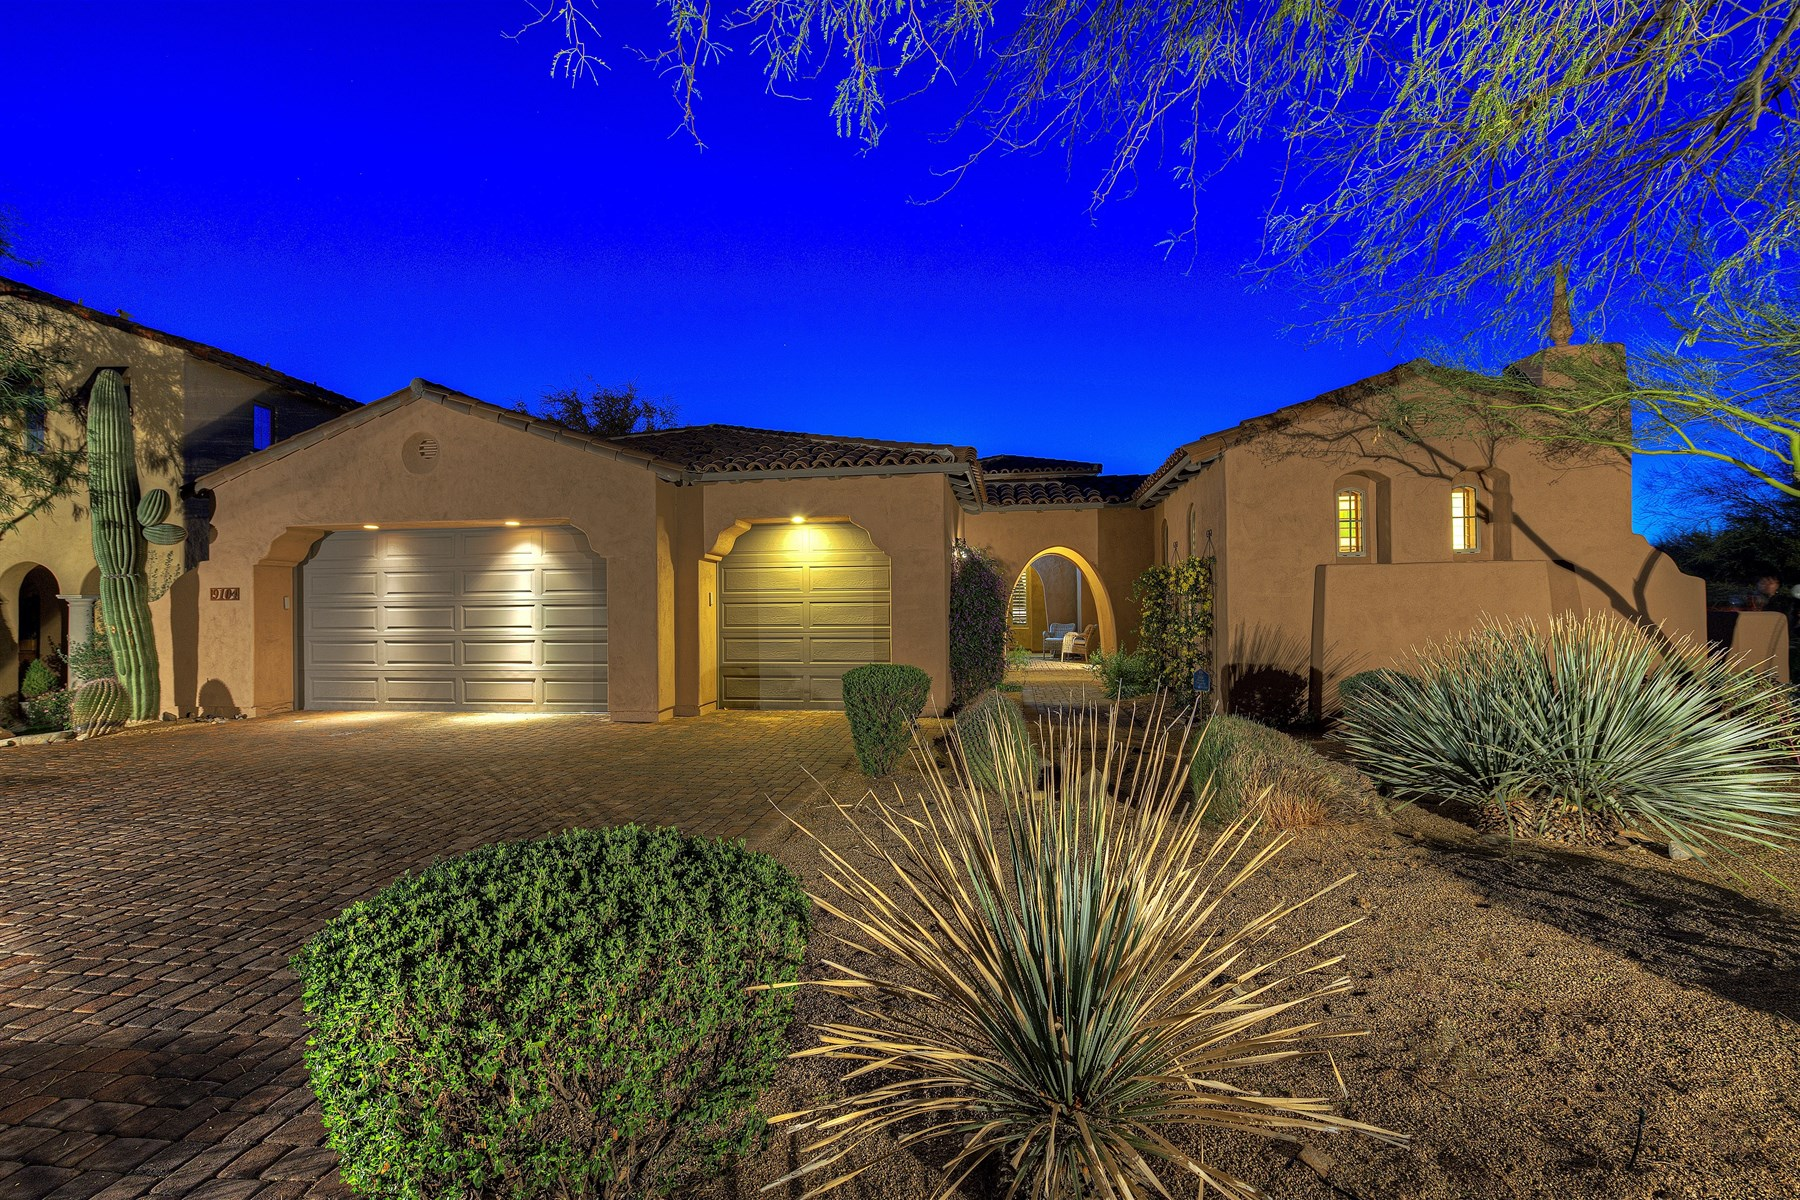 Single Family Home for Sale at Remarkable Private Camelot Home With Complete Privacy On Nearly 1/4 Acres 9104 E Mountain View Rd Scottsdale, Arizona 85255 United States